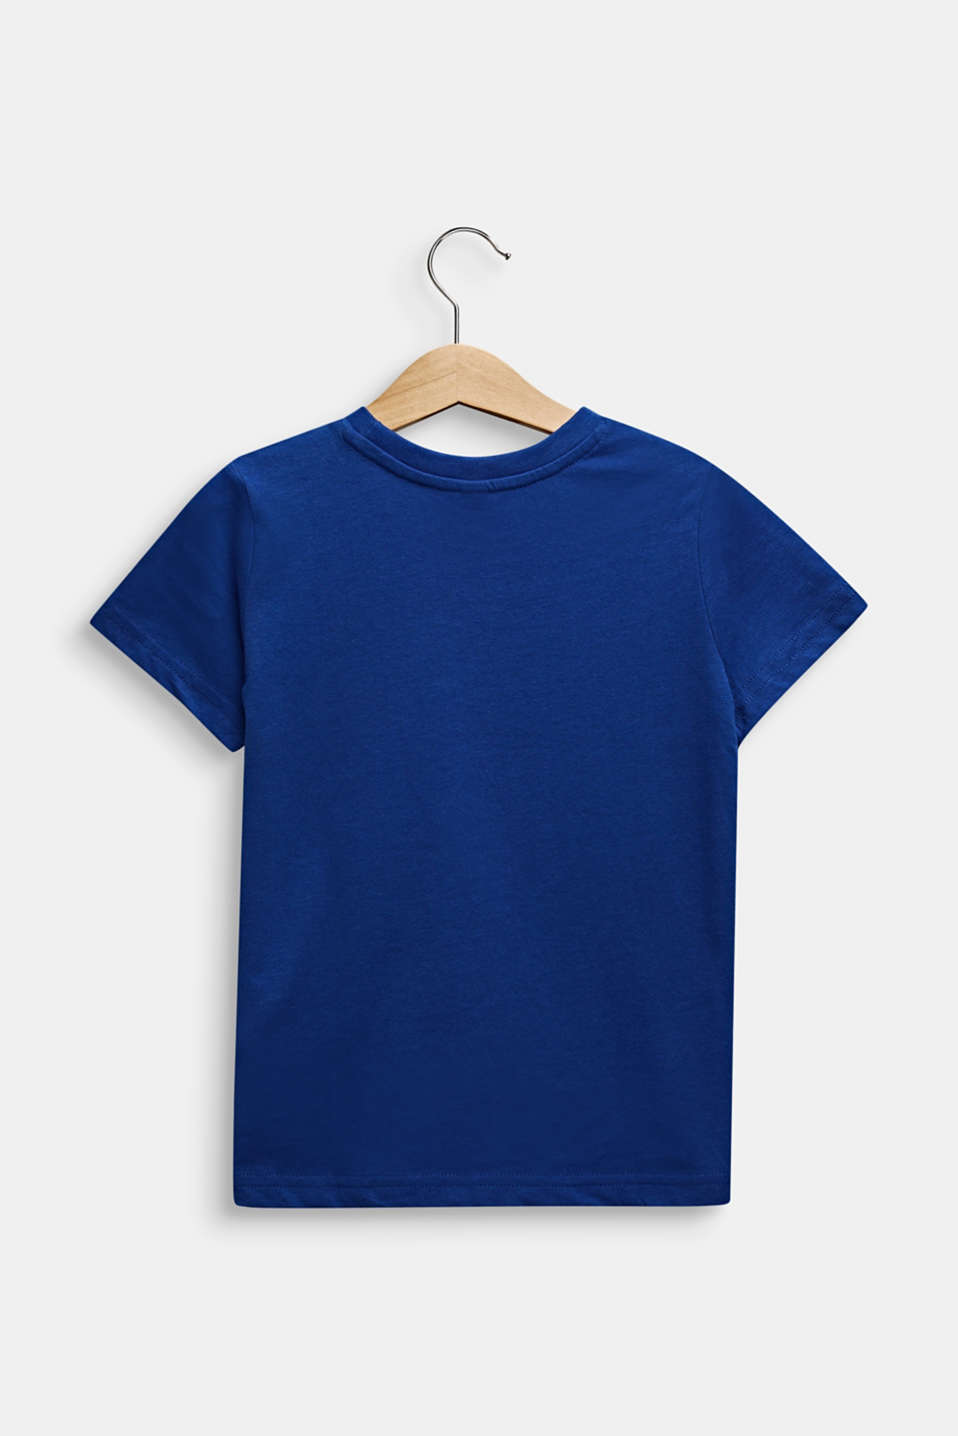 Printed T-shirt, 100% cotton, INFINITY BLUE, detail image number 1